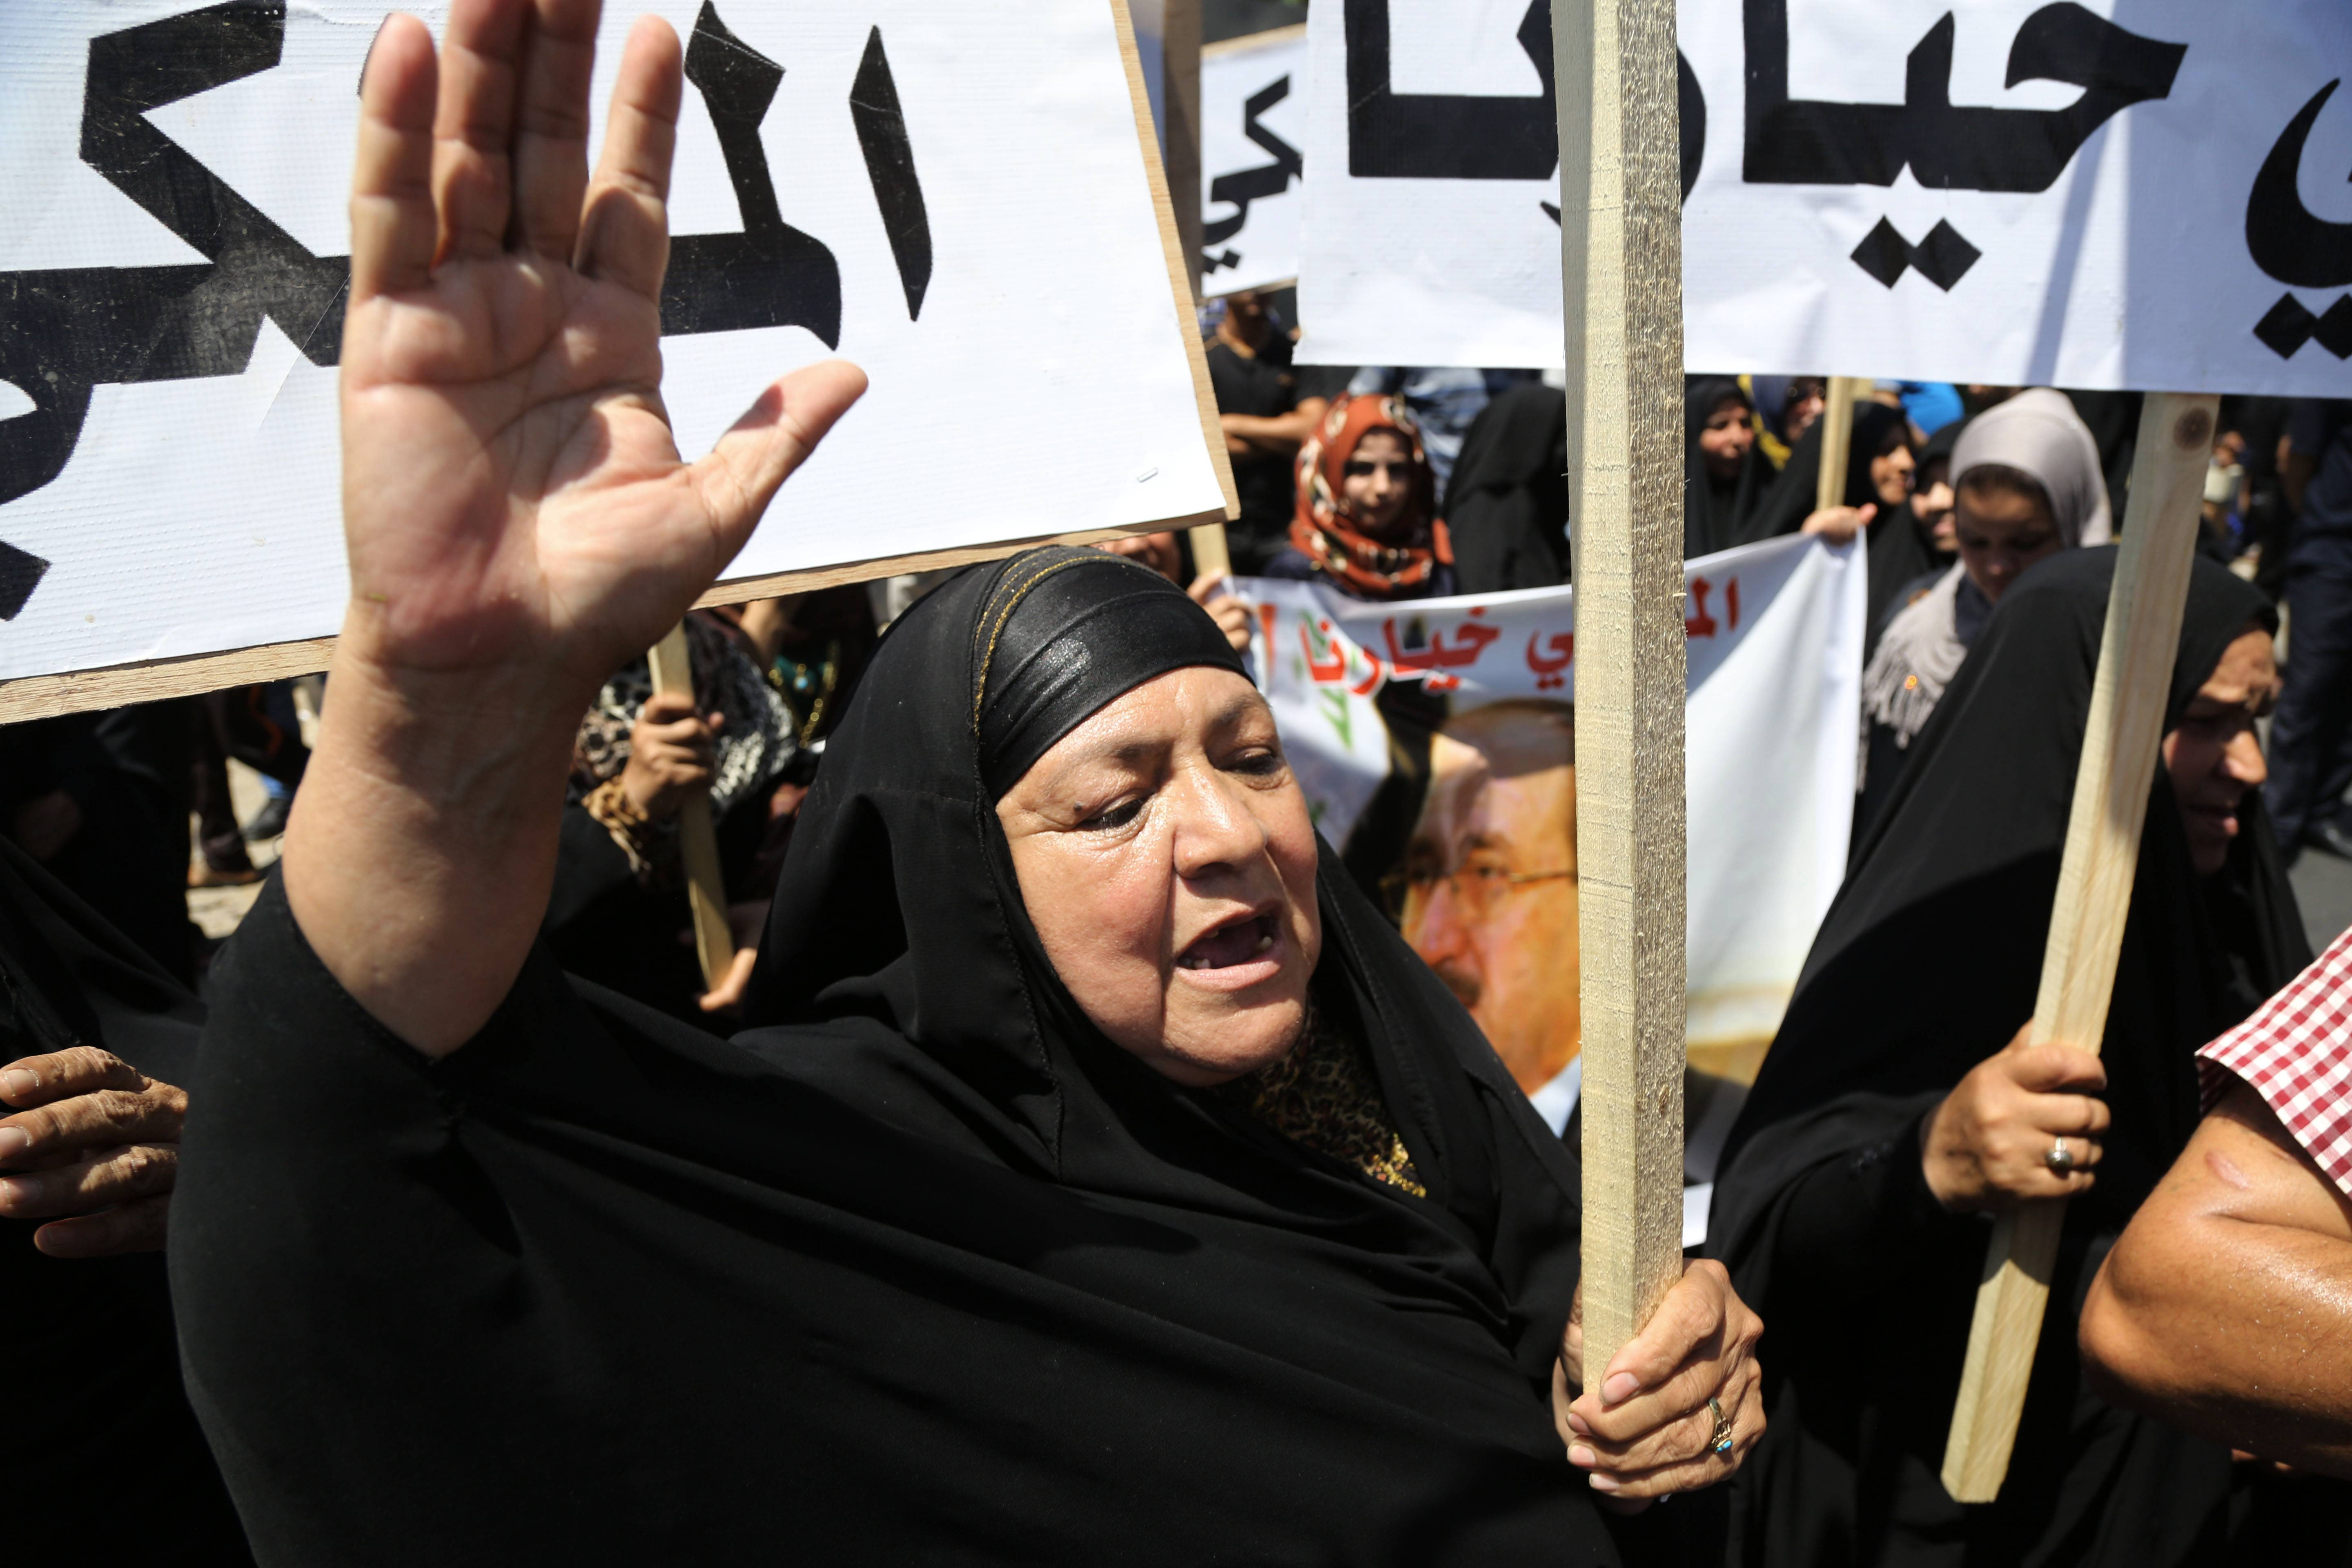 A supporter of Prime Minister Nouri al-Maliki chants slogans during a demonstration in Baghdad, Iraq, Wednesday, Aug 13, 2014. Tanks and Humvees were positioned on Baghdad bridges and at major intersections on Wednesday, with security personnel more visible than usual as pro-Maliki demonstrators took to Firdous Square in the capital, pledging their allegiance to him.